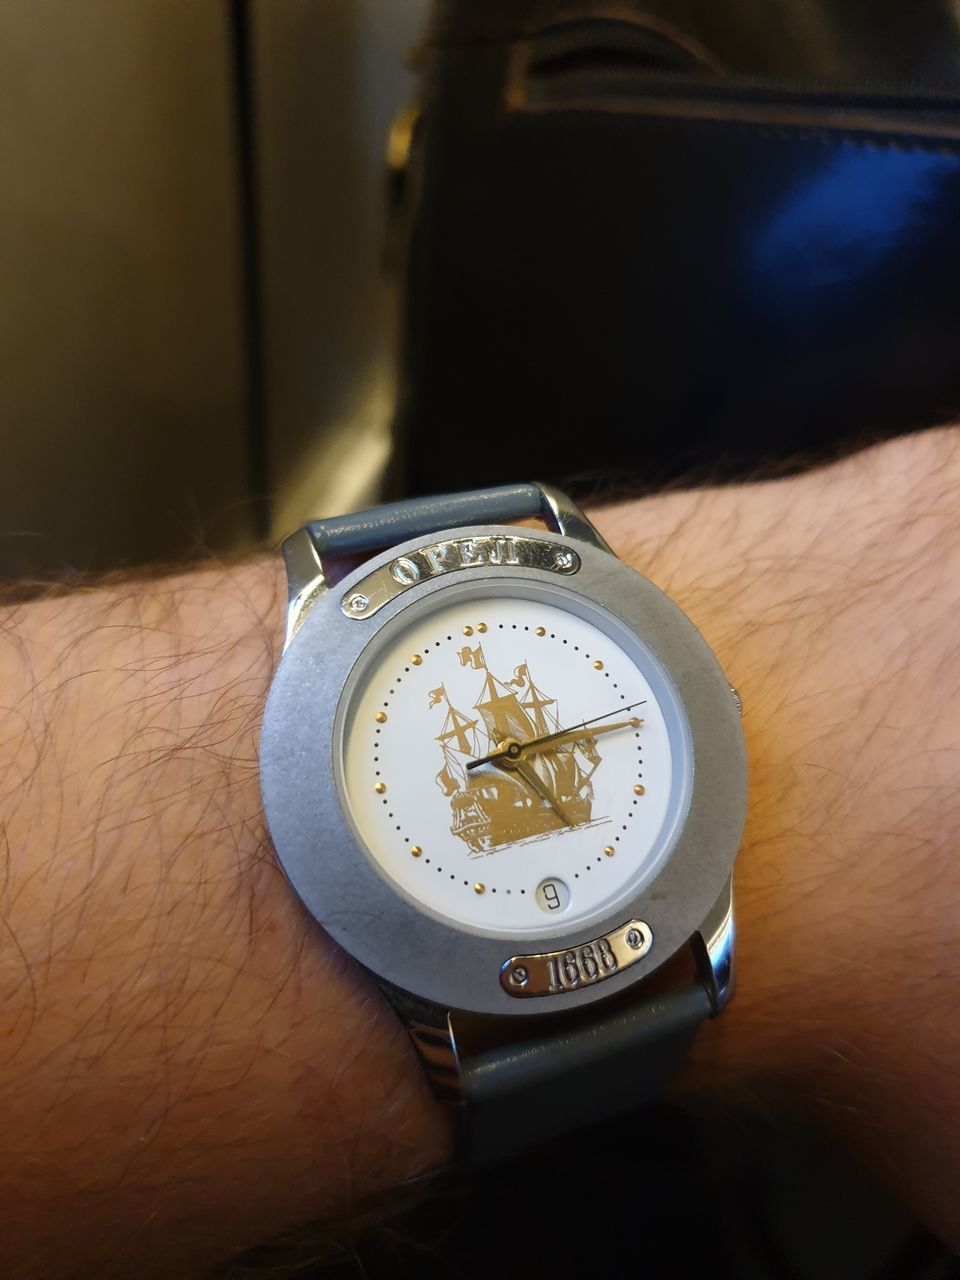 hand, human hand, time, human body part, watch, one person, real people, wristwatch, close-up, number, indoors, focus on foreground, body part, high angle view, unrecognizable person, lifestyles, personal accessory, leisure activity, men, wrist, clock, finger